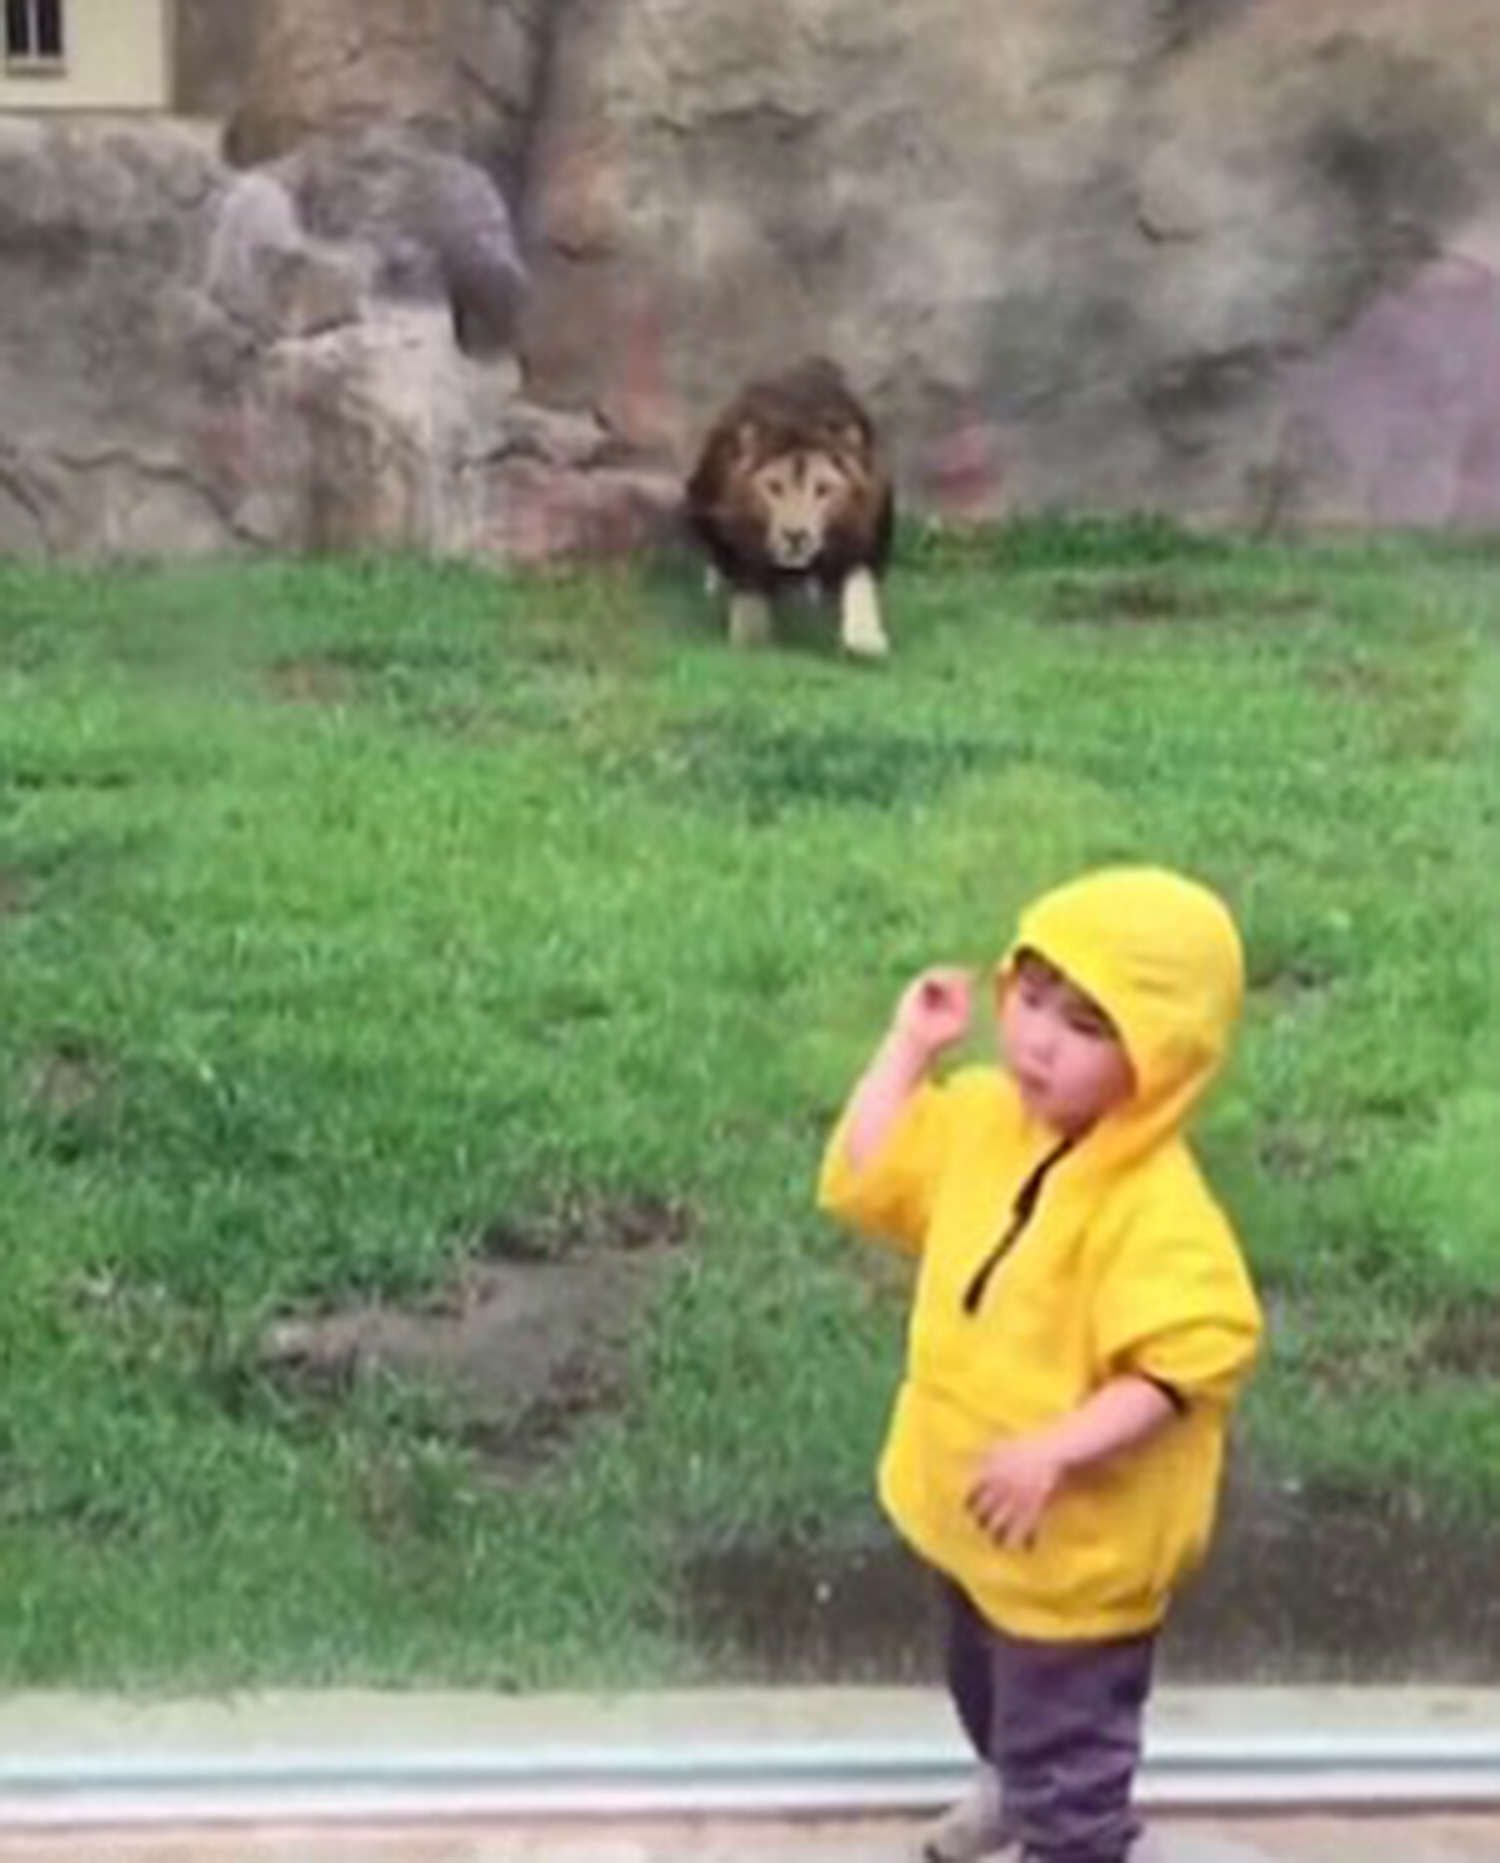 Terrifying Moment Lion Tries To Attack Toddler In Zoo lion5 2911060a